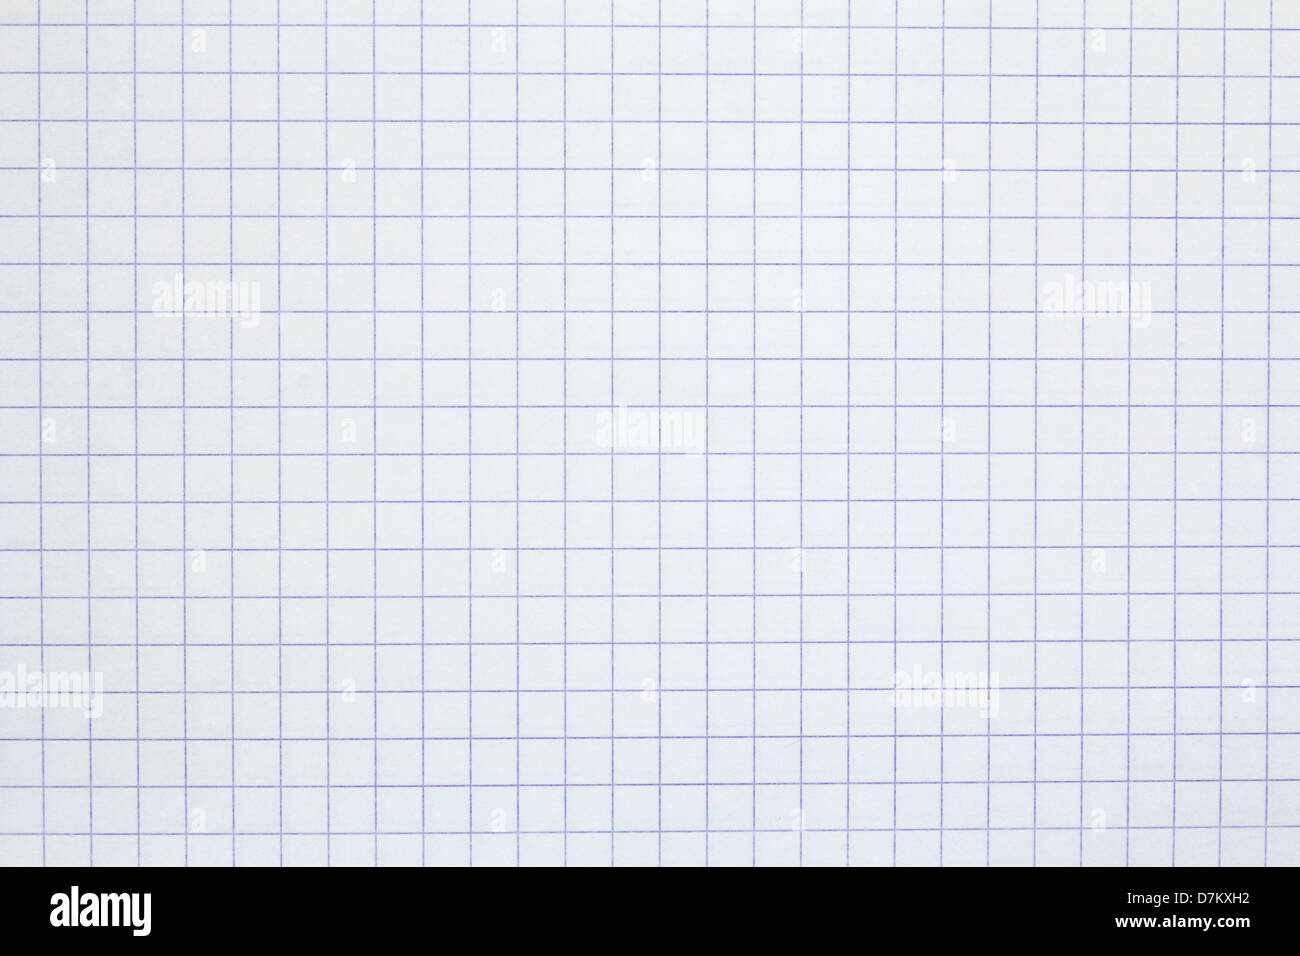 squared sheet of paper - Stock Image